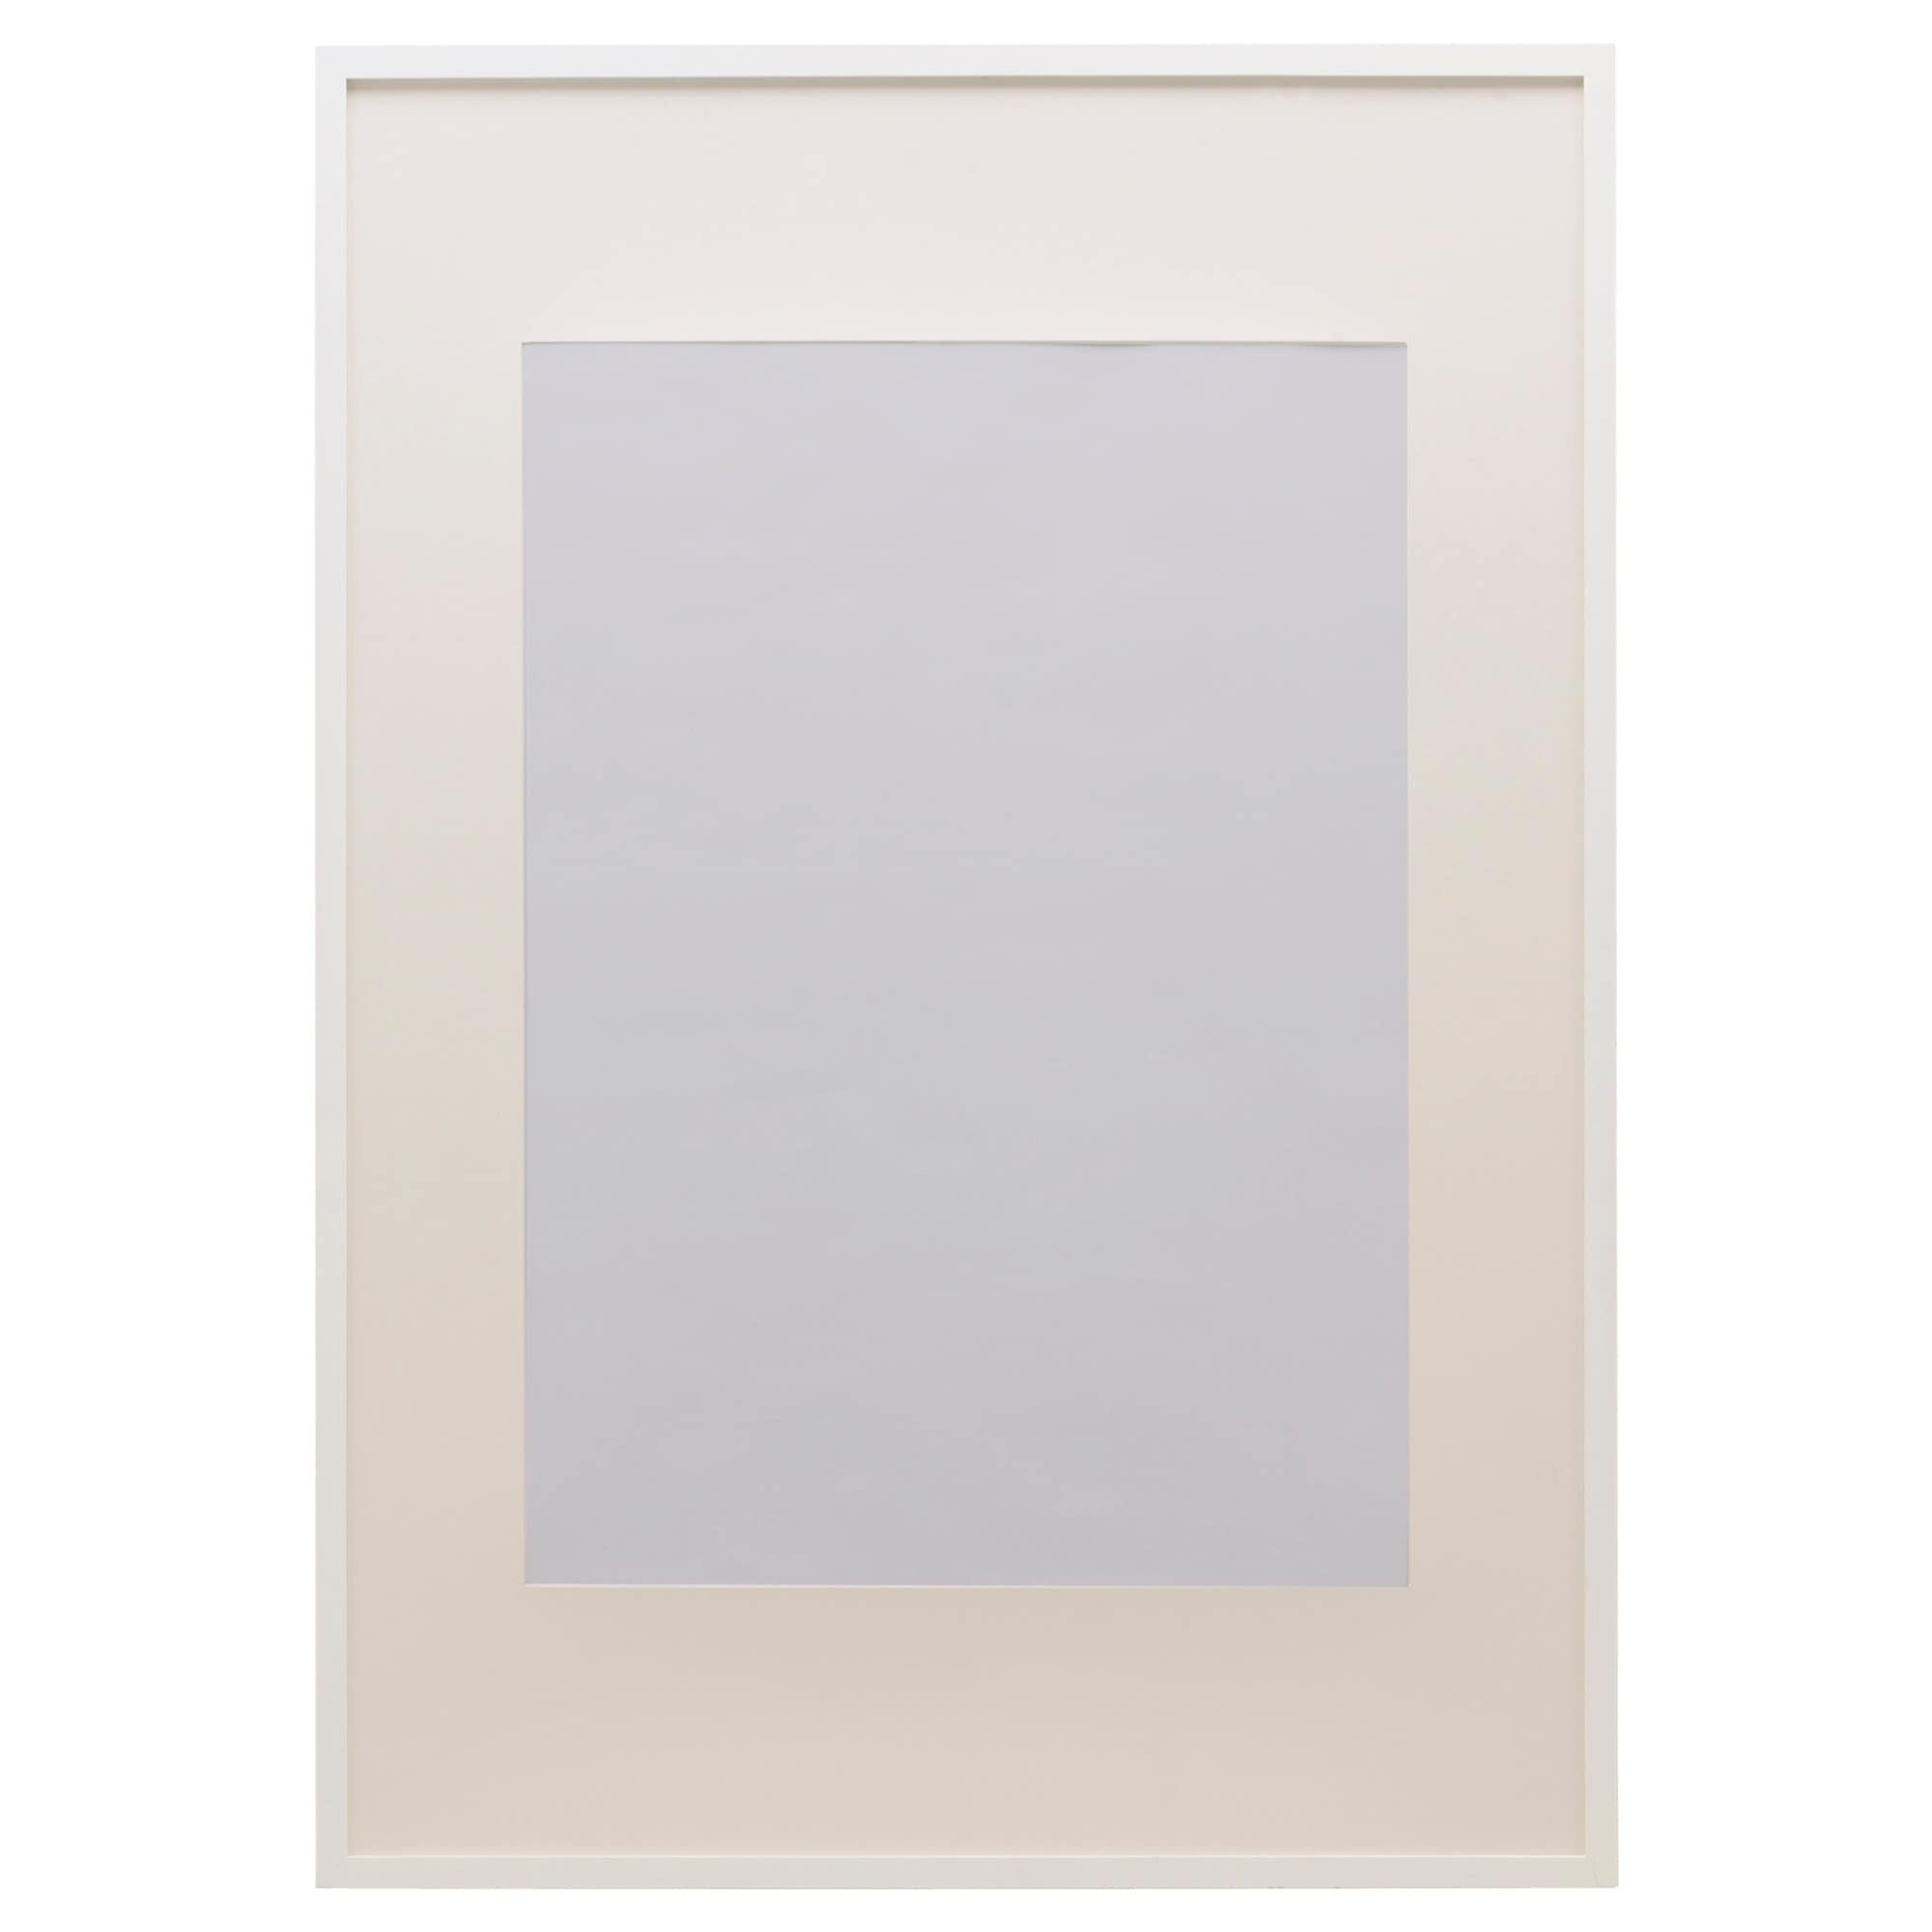 ribba frame white picture without mat width 12 picture without mat